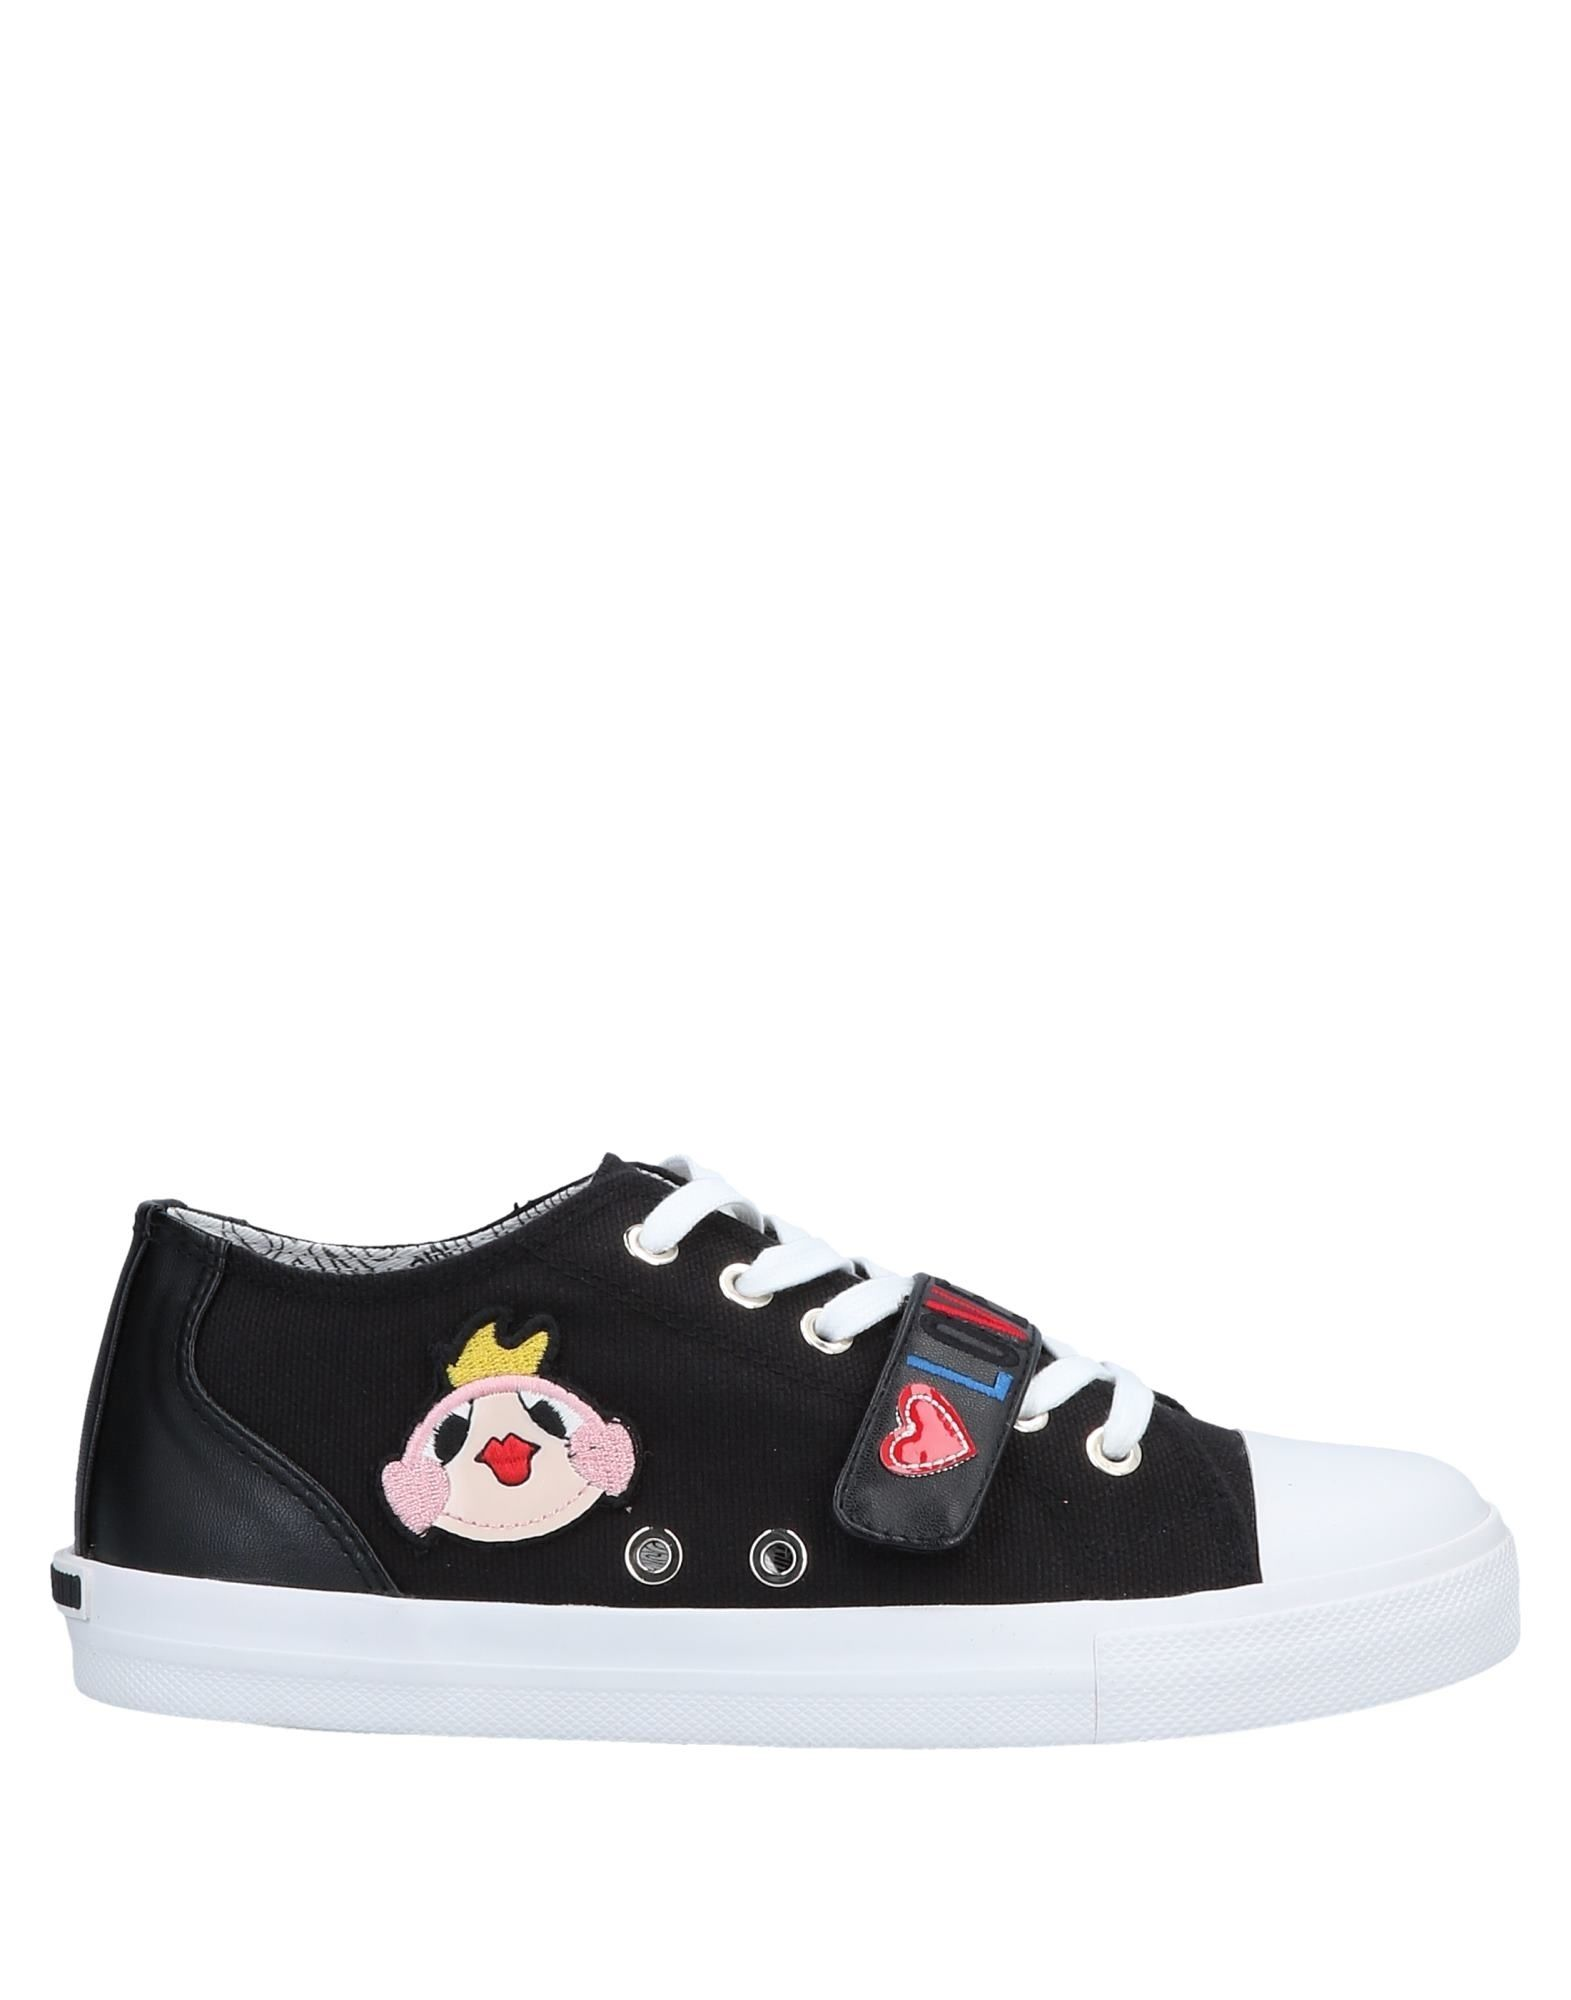 6bd8897dec11 Love Moschino Sneakers - Women Love Moschino Sneakers online on YOOX ...